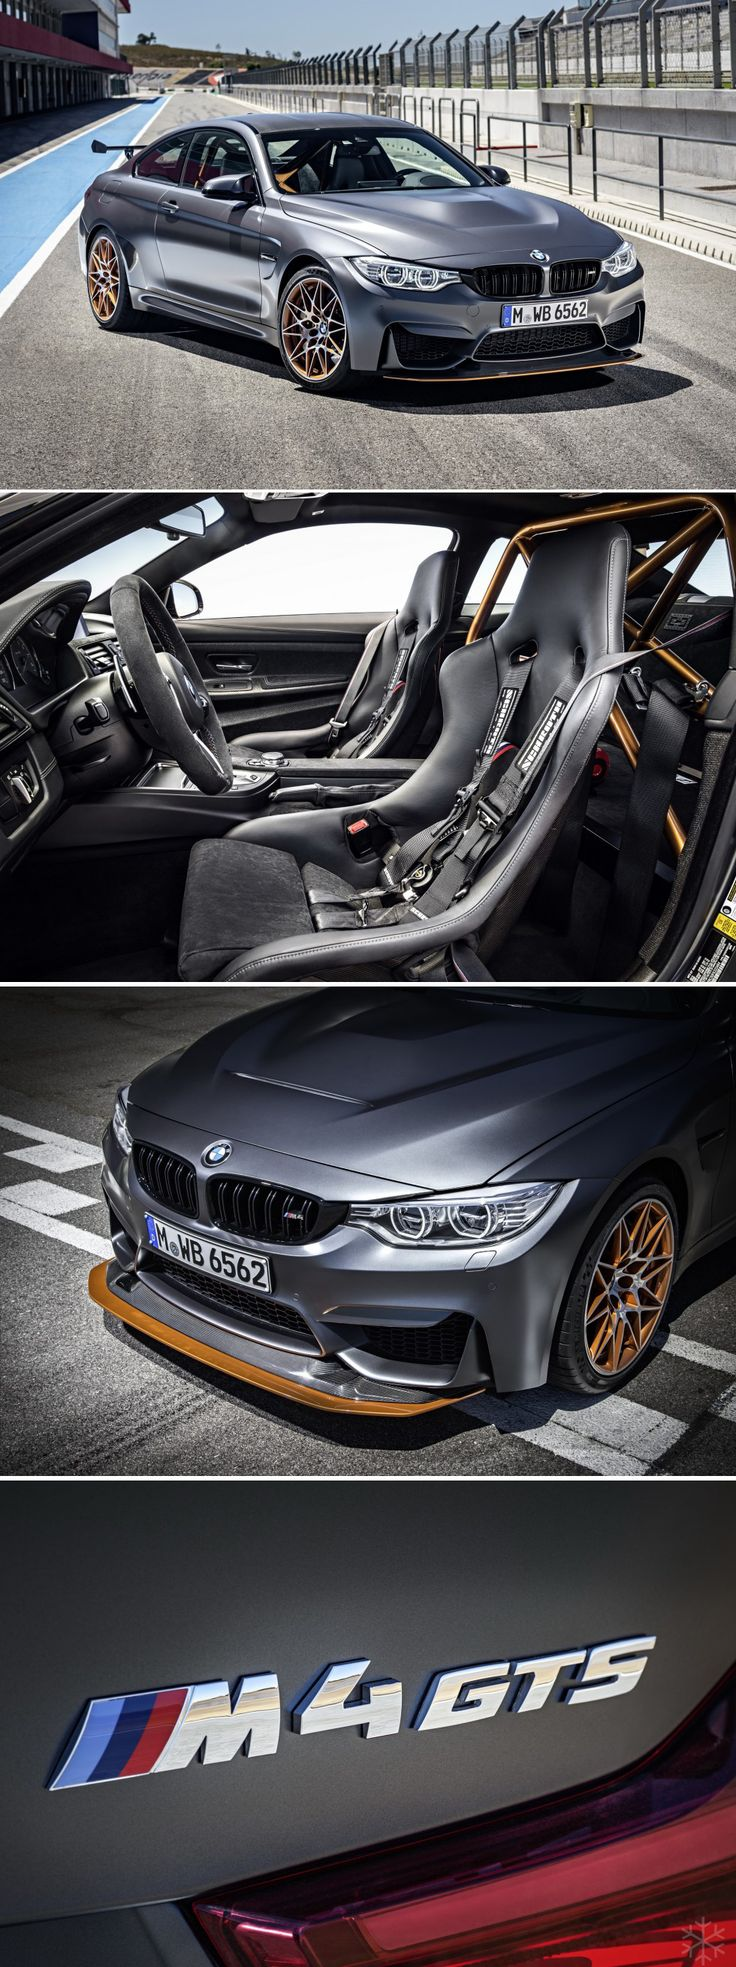 BMW M4 GTS - uprated 493bhp straight-six engine (0-62mph in 3.8s) & lightweight carbon fibre body parts - List Price £121,770 - The lightweight road car debuts a variety of BMW firsts, including OLED light tech and an innovative water injection system. The latter cleverly cools the air feeding the turbo – resulting in a massive power increase without any noticeable disadvantages in terms of fuel economy #specialedition...x